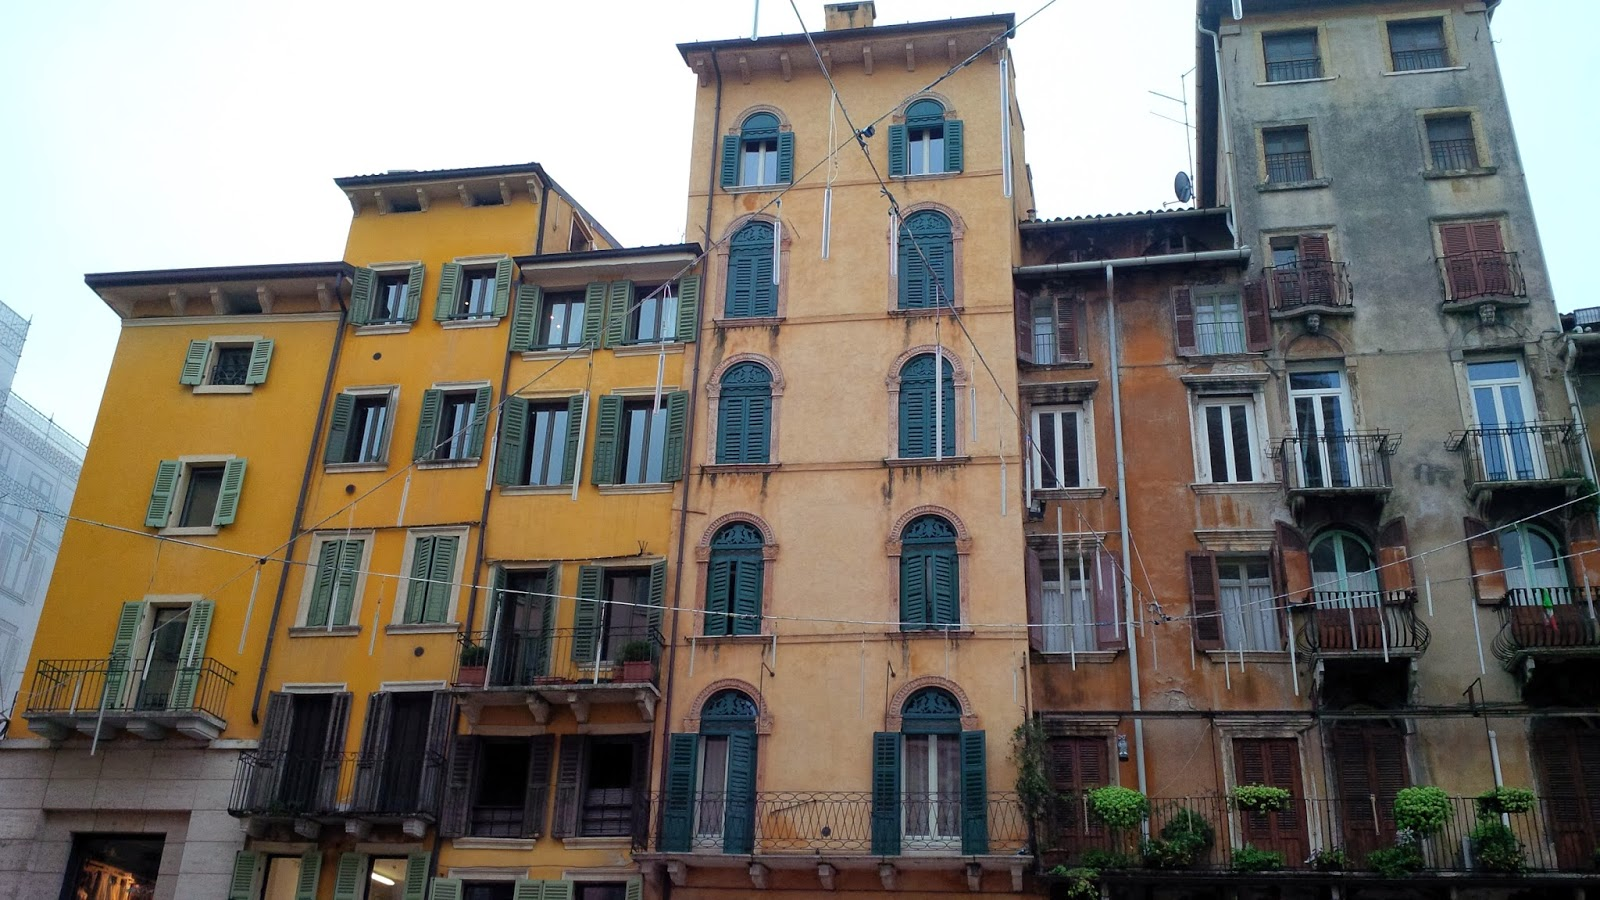 Colourful tall and narrow buildings on Piazza delle Erbe in Verona